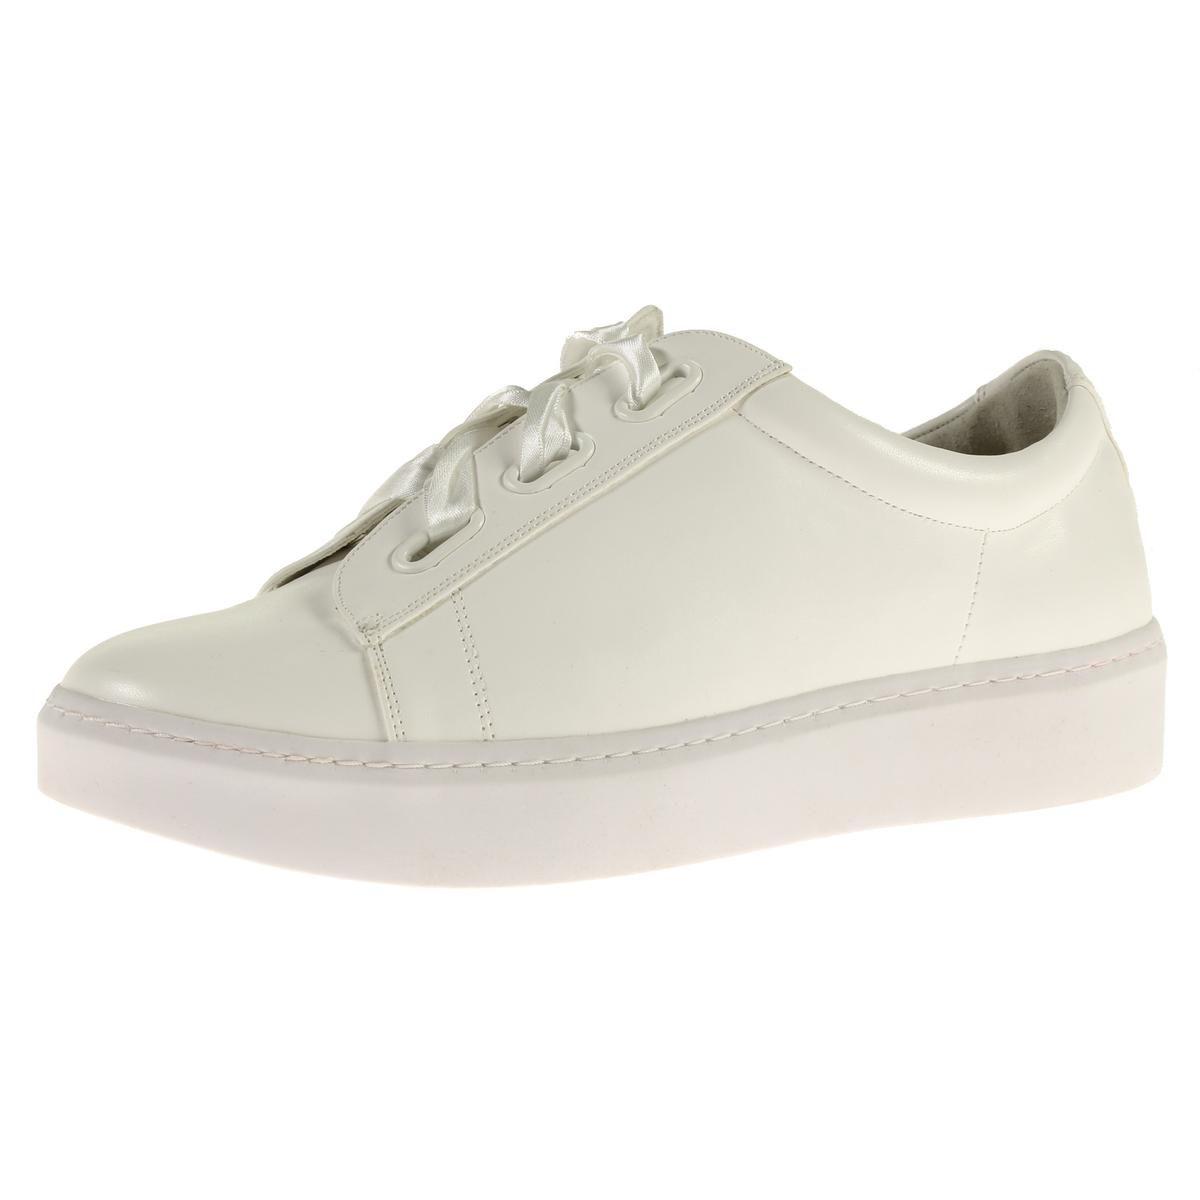 ad5afe9ae9c Details about Steve Madden Womens Frederica Platform Fashion Sneakers Shoes  BHFO 3647